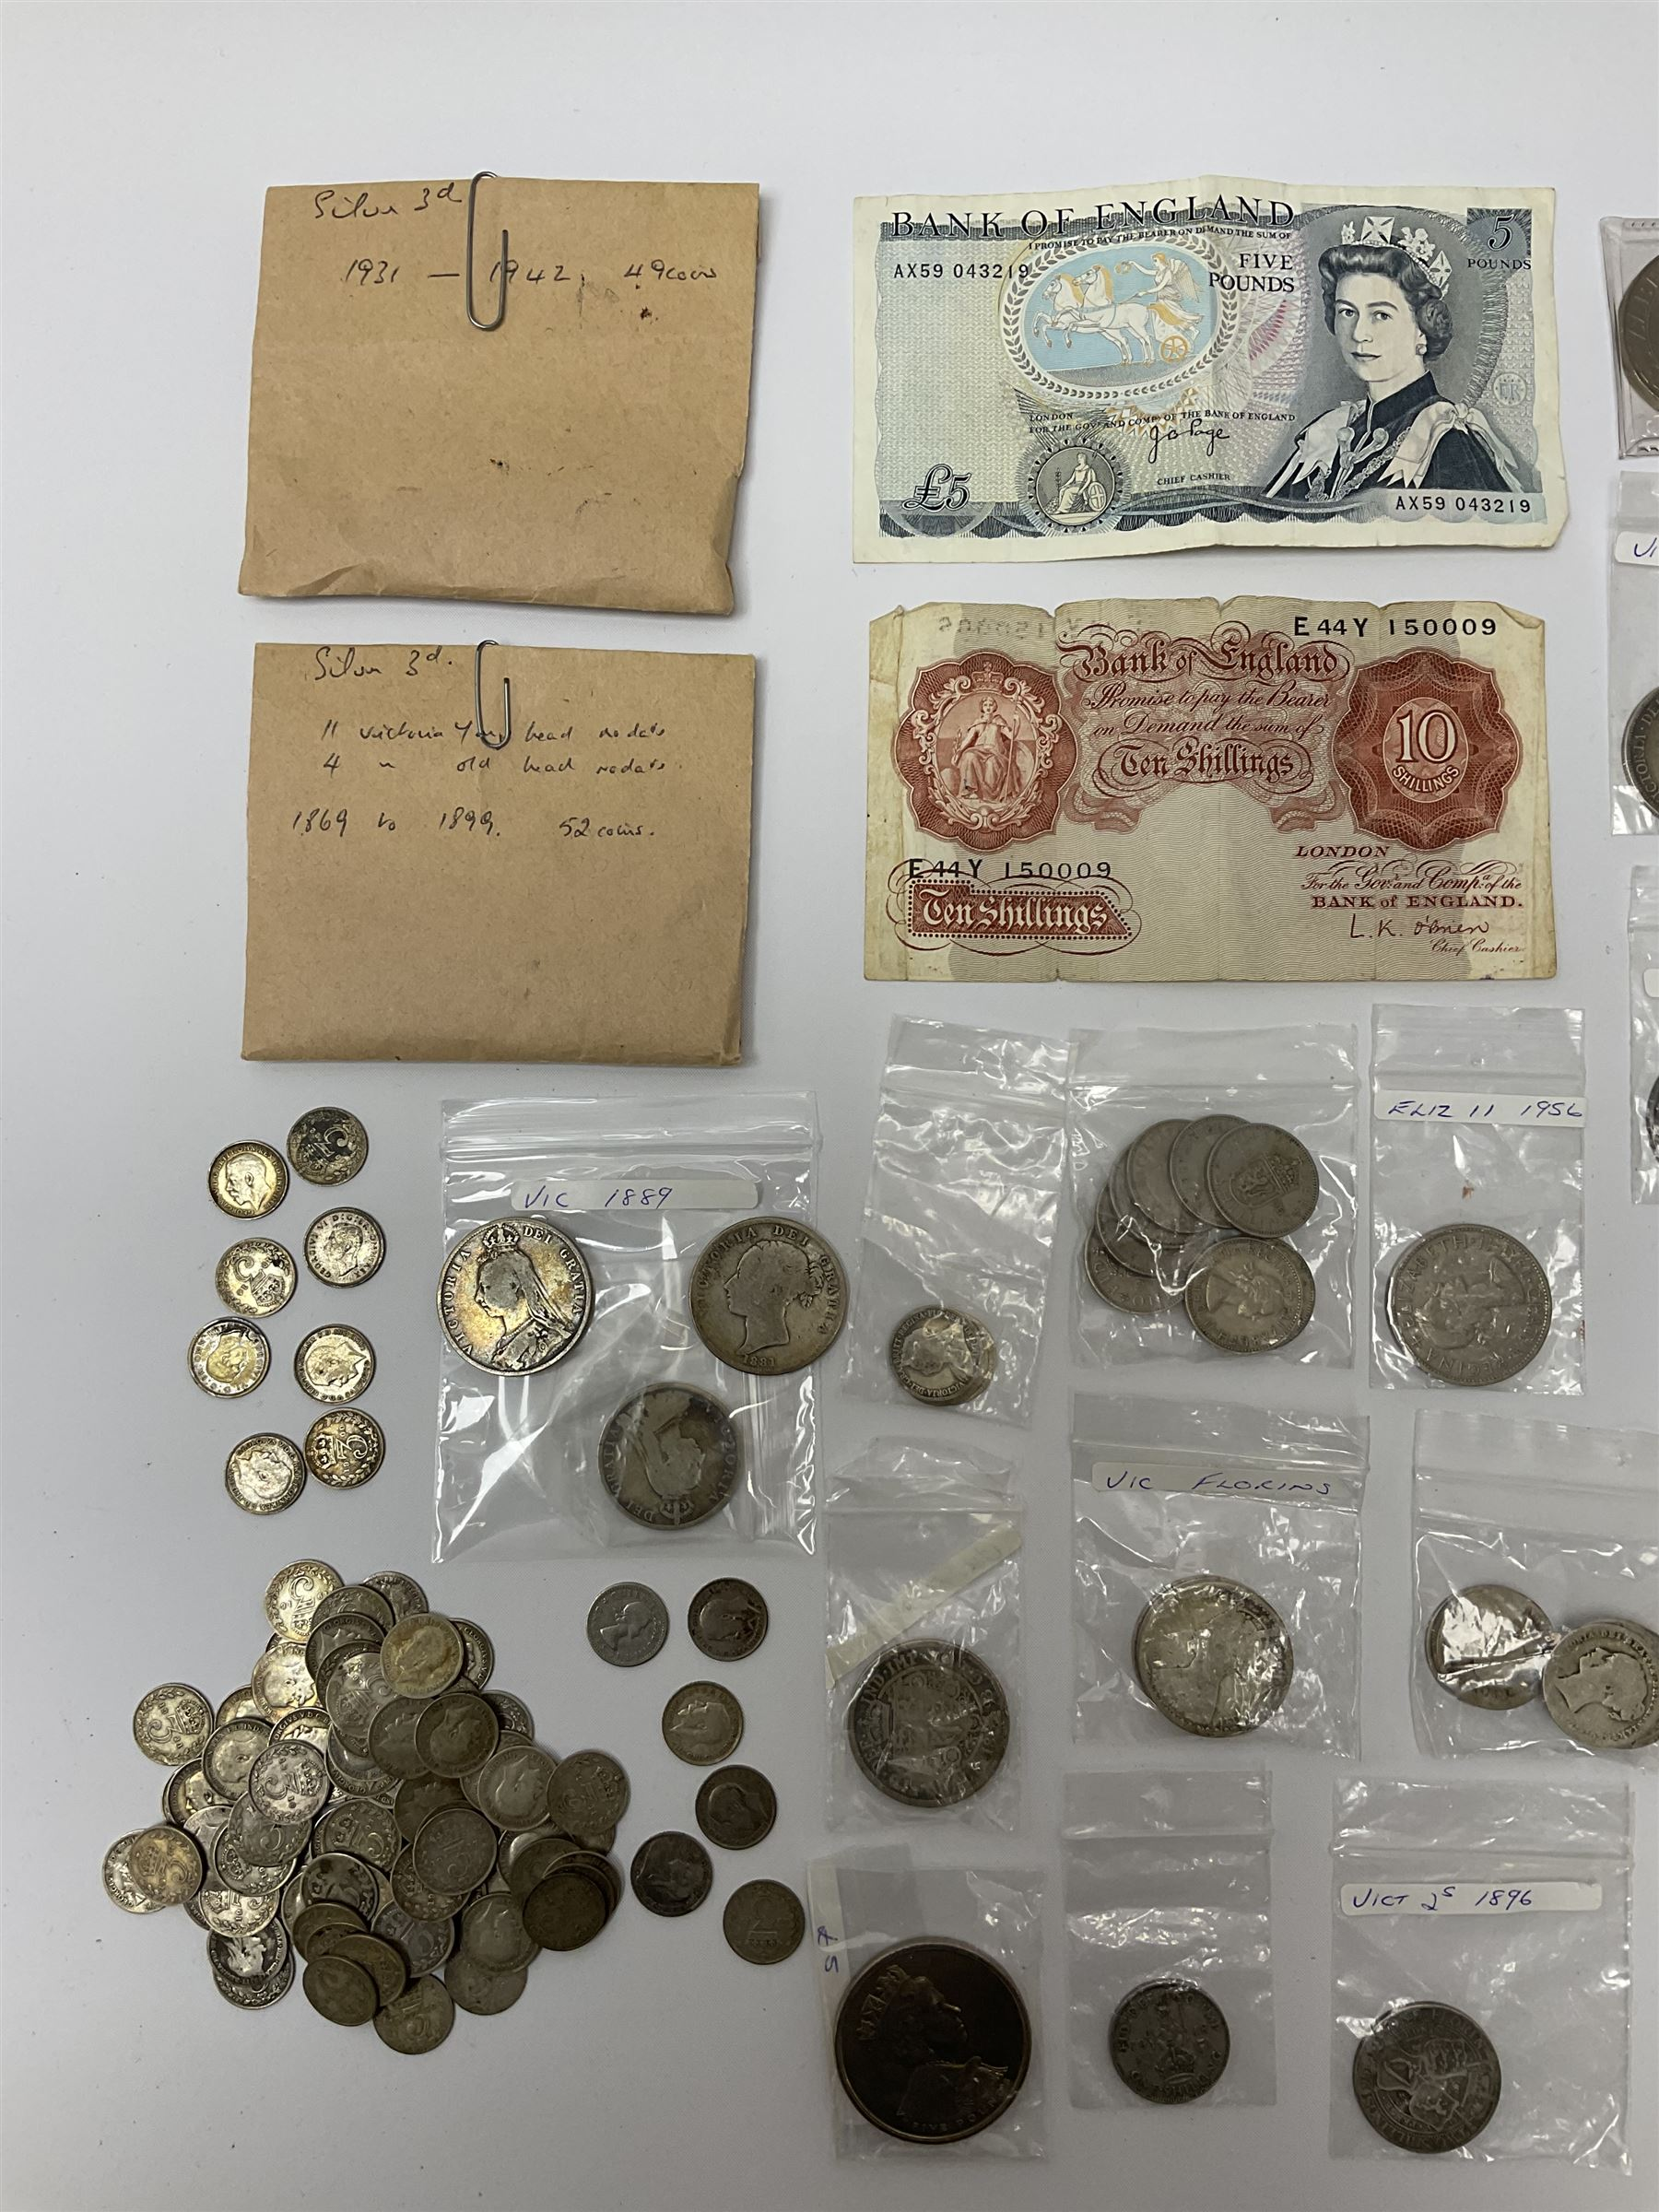 Mostly Great British coins and banknotes including Queen Victoria Gothic florins - Image 2 of 3